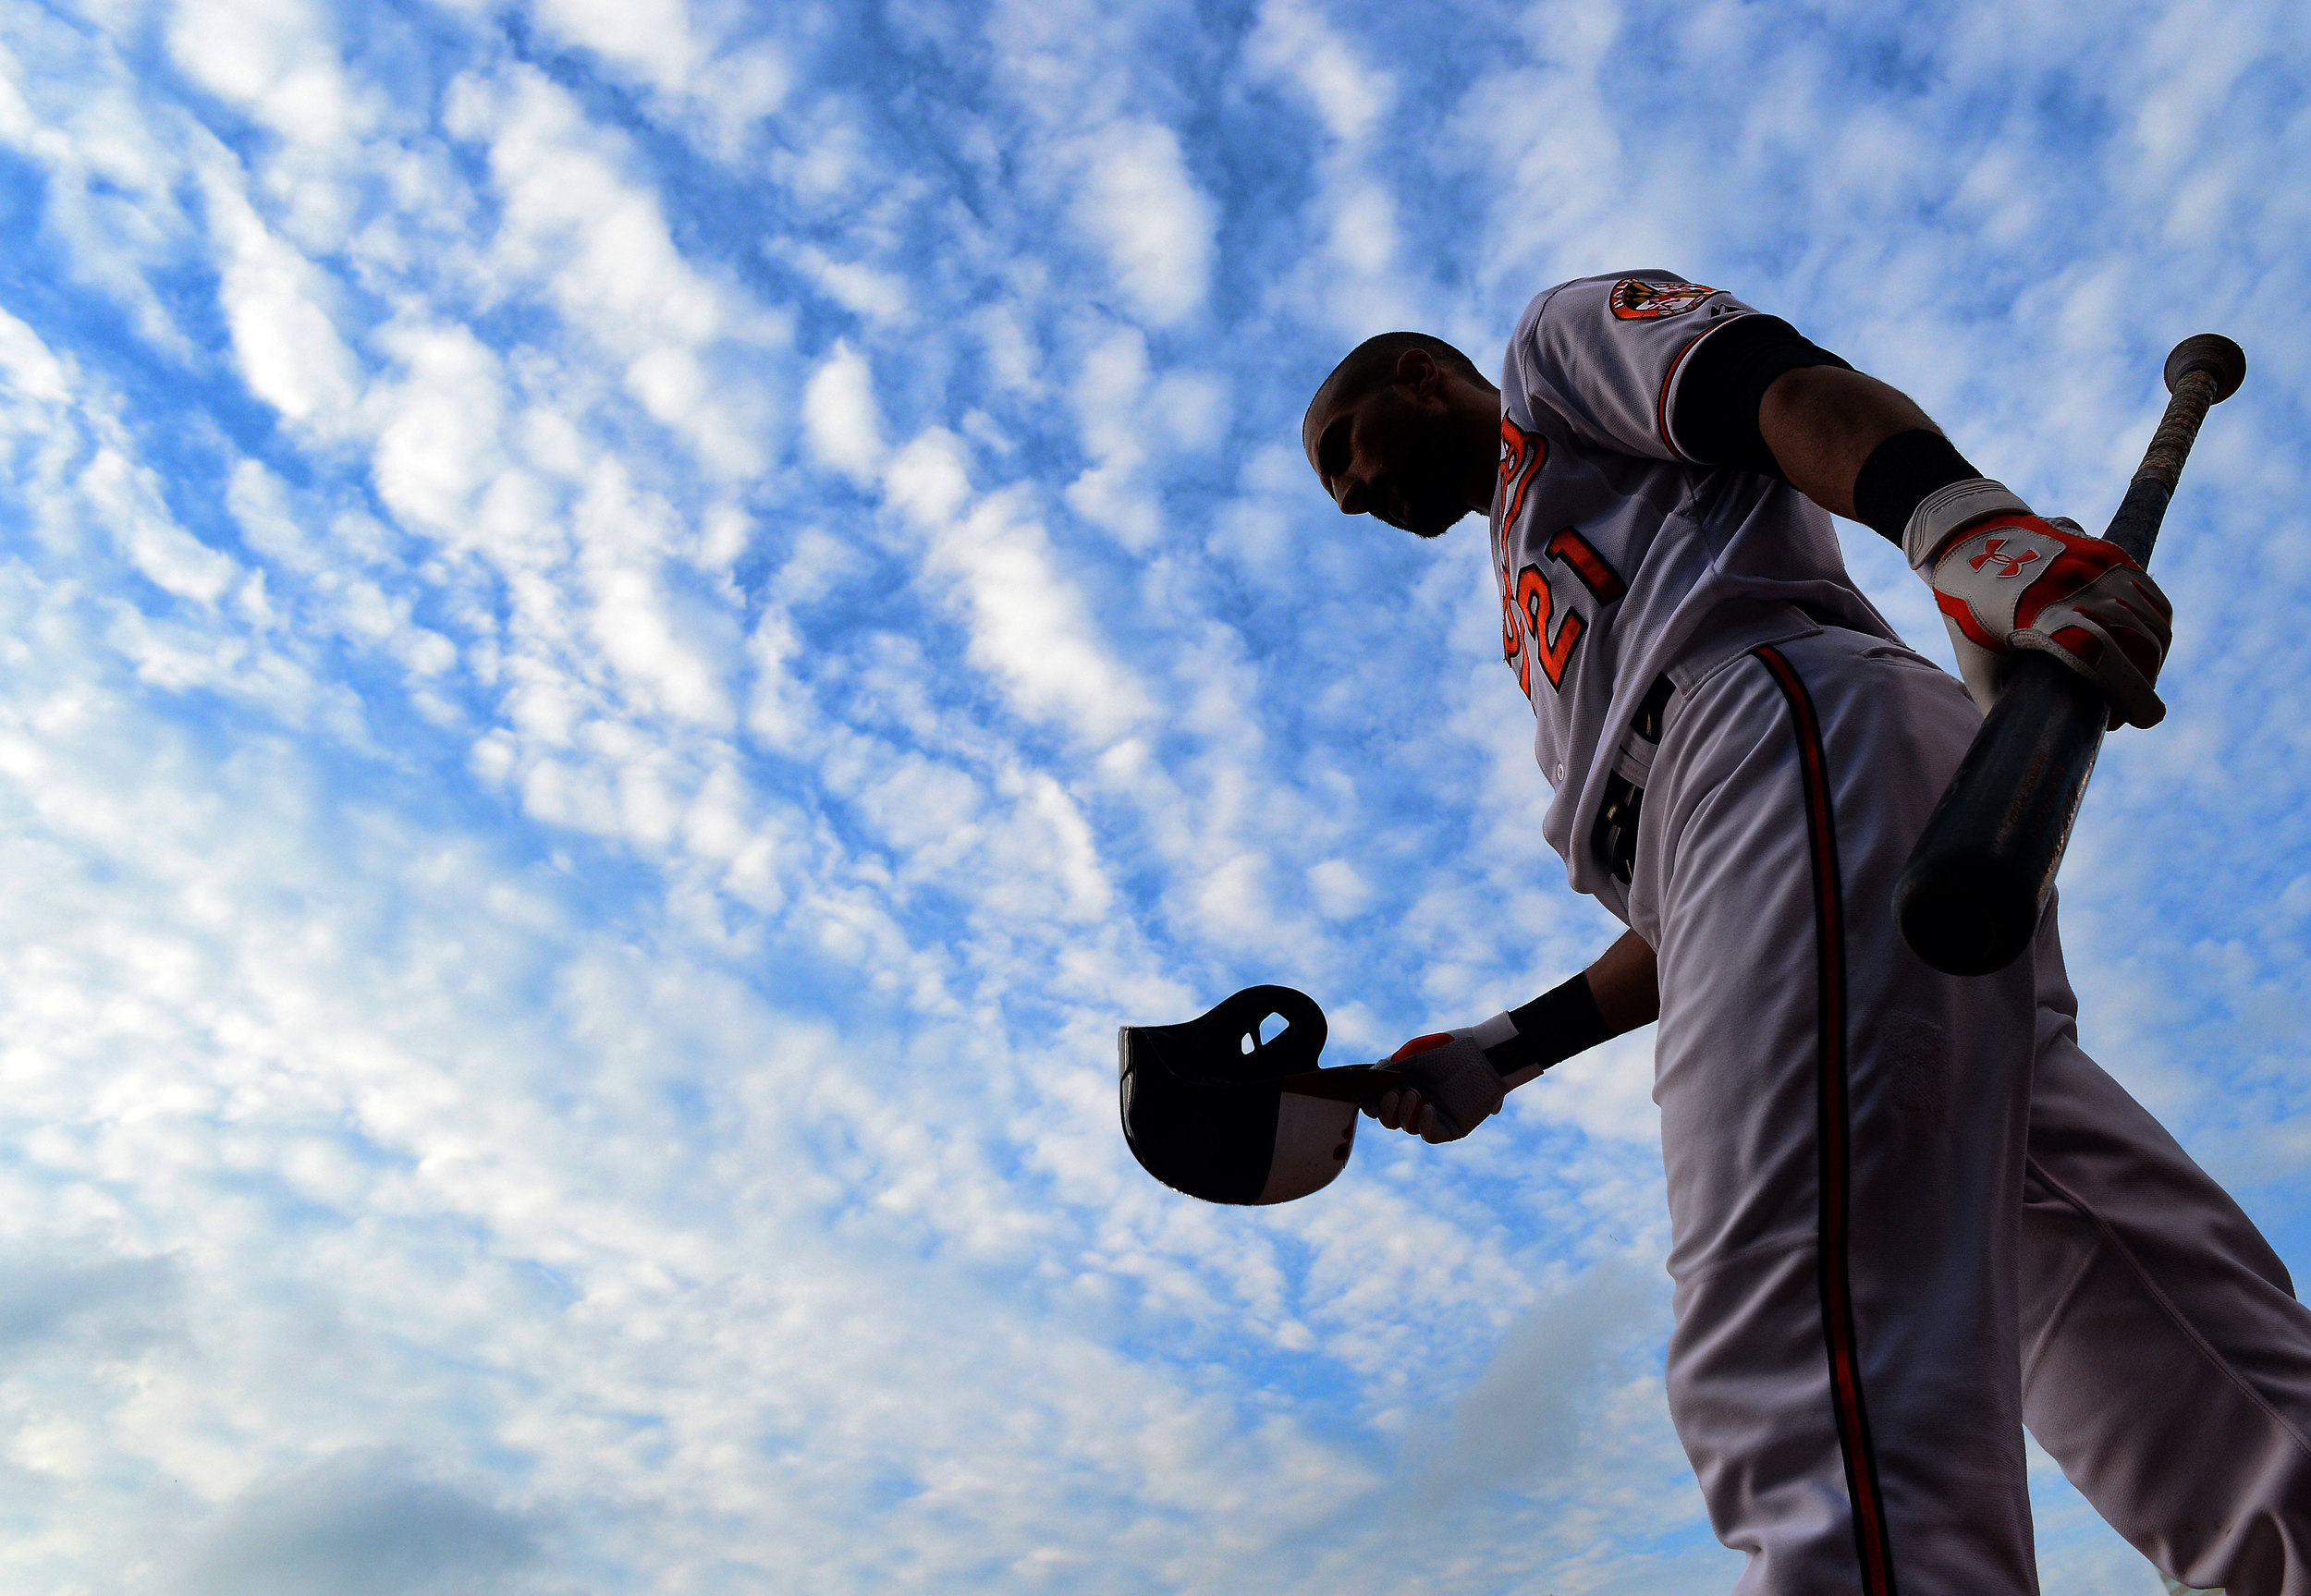 Baltimore Orioles right fielder Nick Markakis prepares for an at-bat on July 31, 2013 in Baltimore, Md.